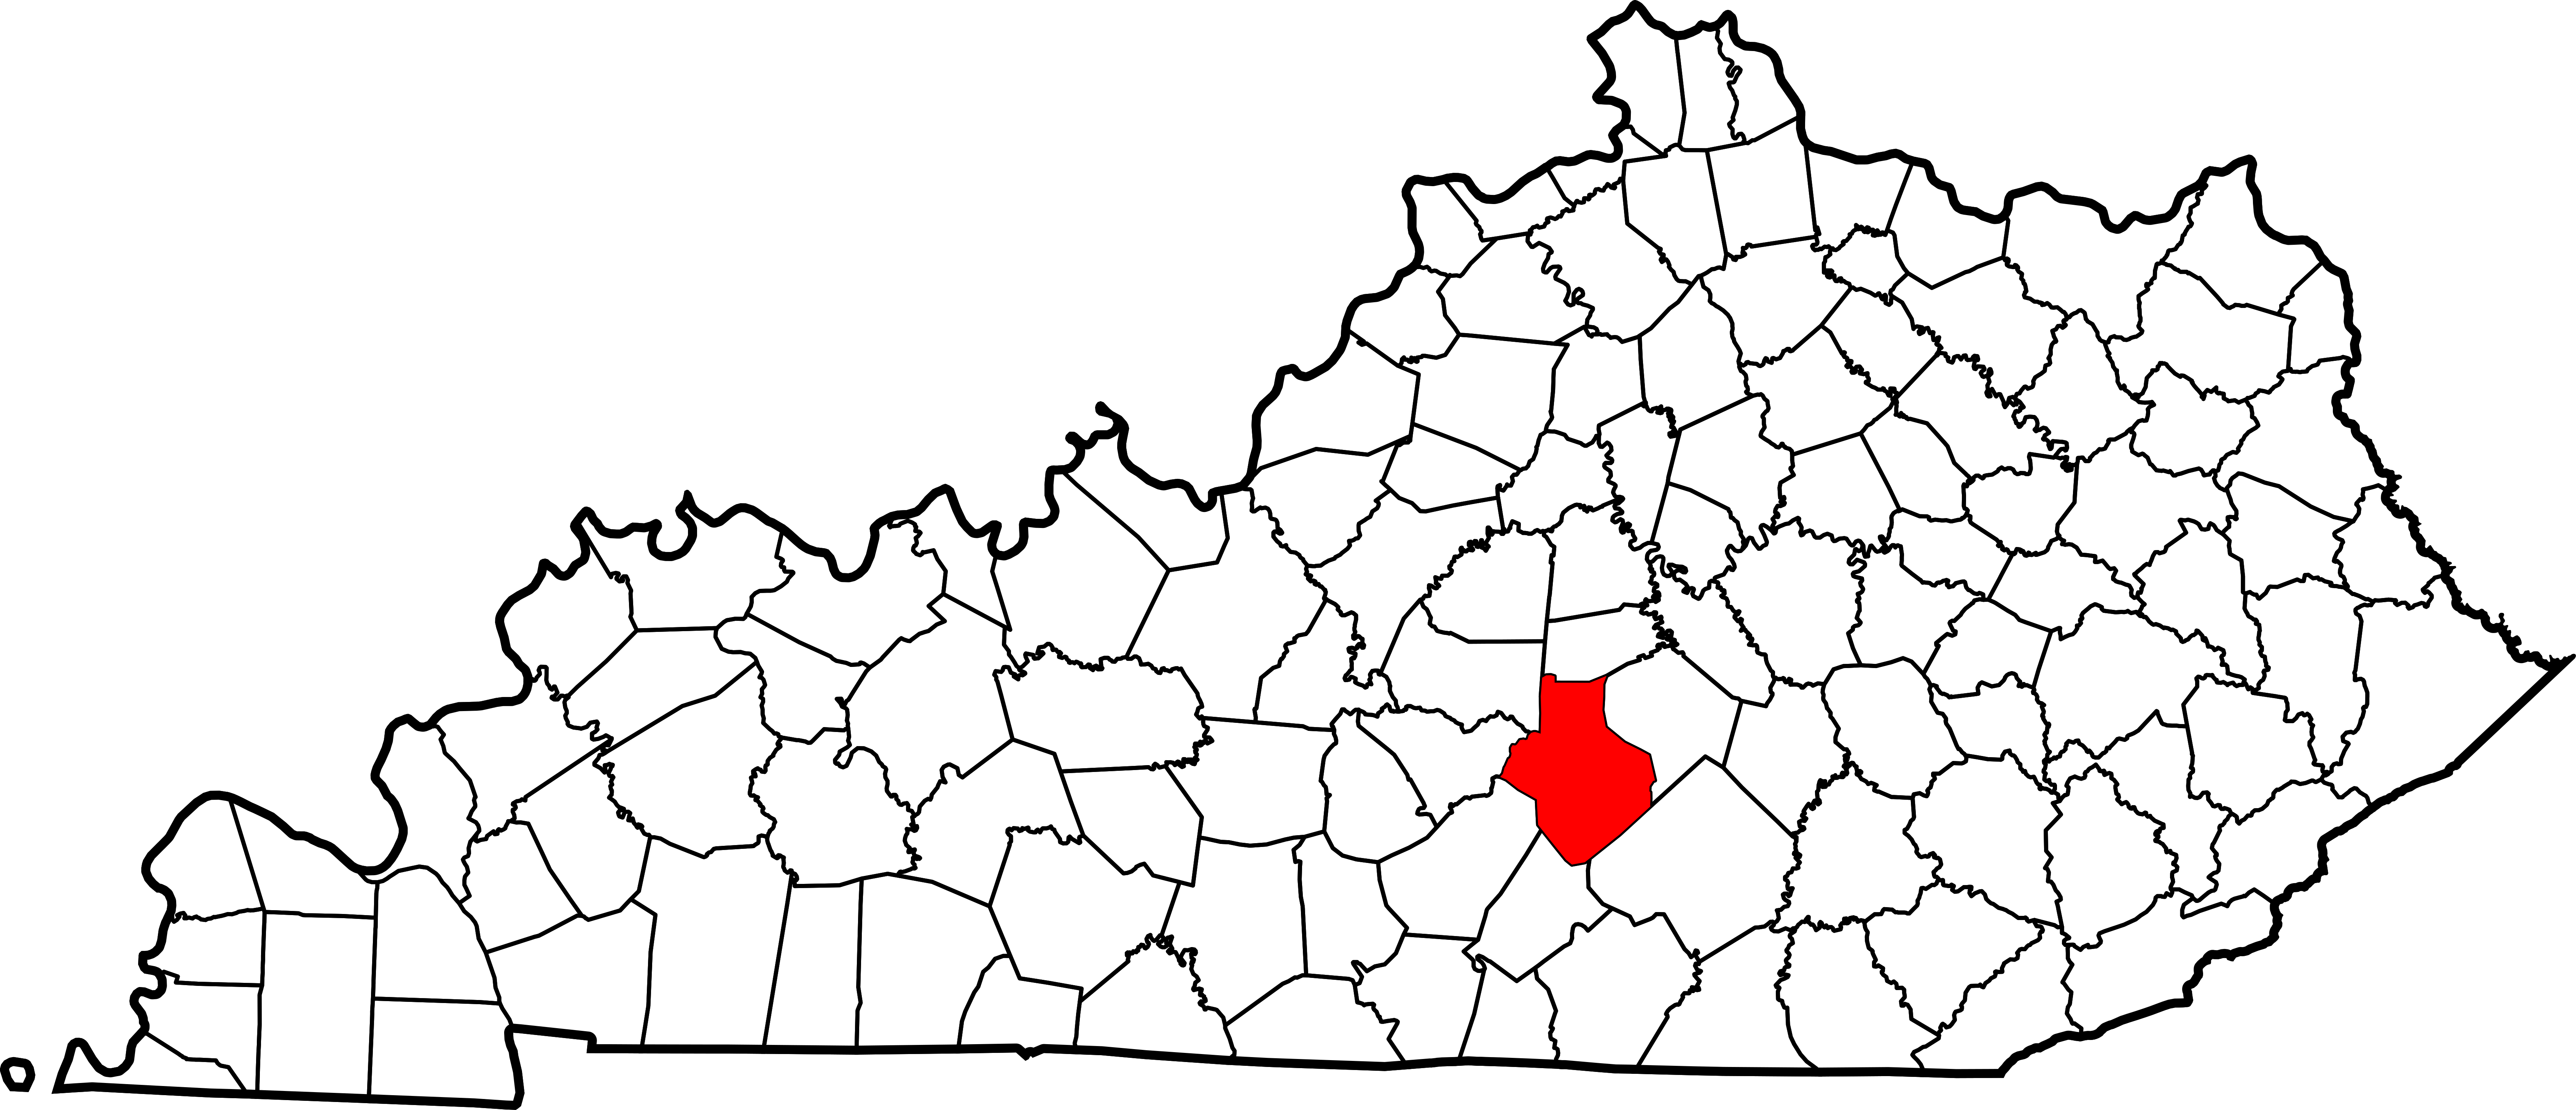 Kentucky outline png. File map of highlighting